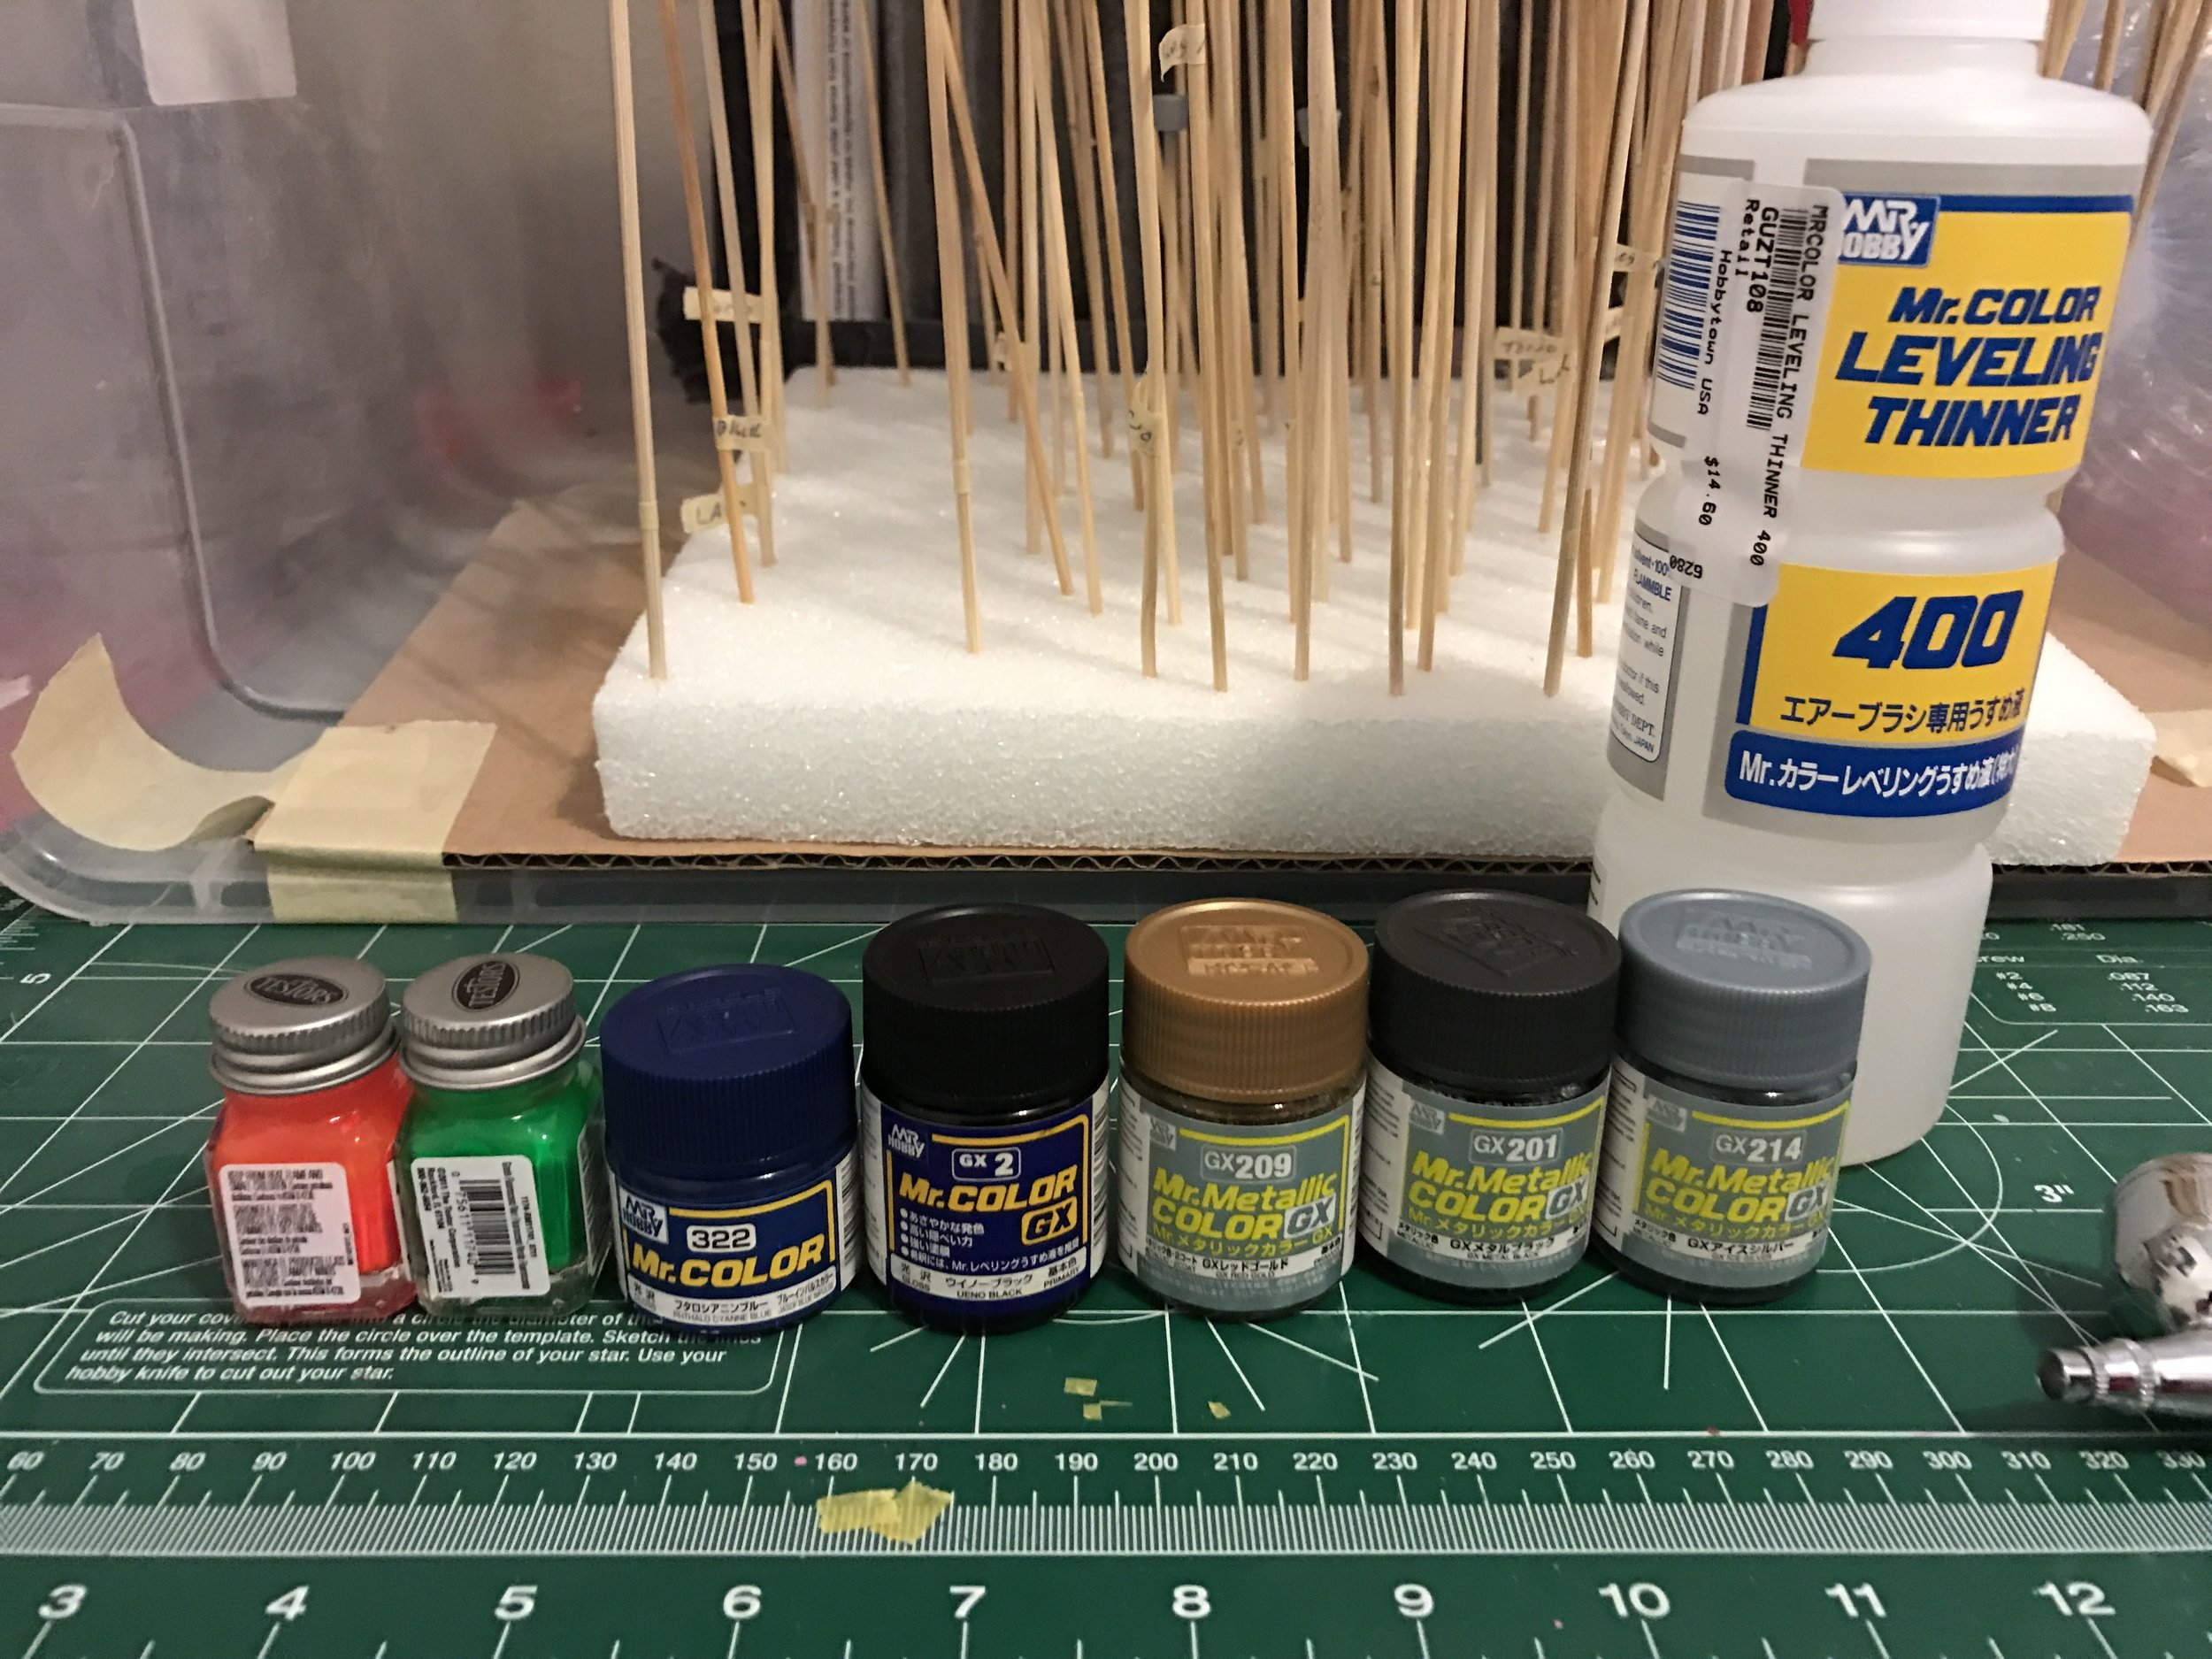 Here are the colors I'll be using. The metallics will be for the frame, weapons and maybe the face. The black and dark blue will be for the armor and and the fluorescents will be for panel lines.